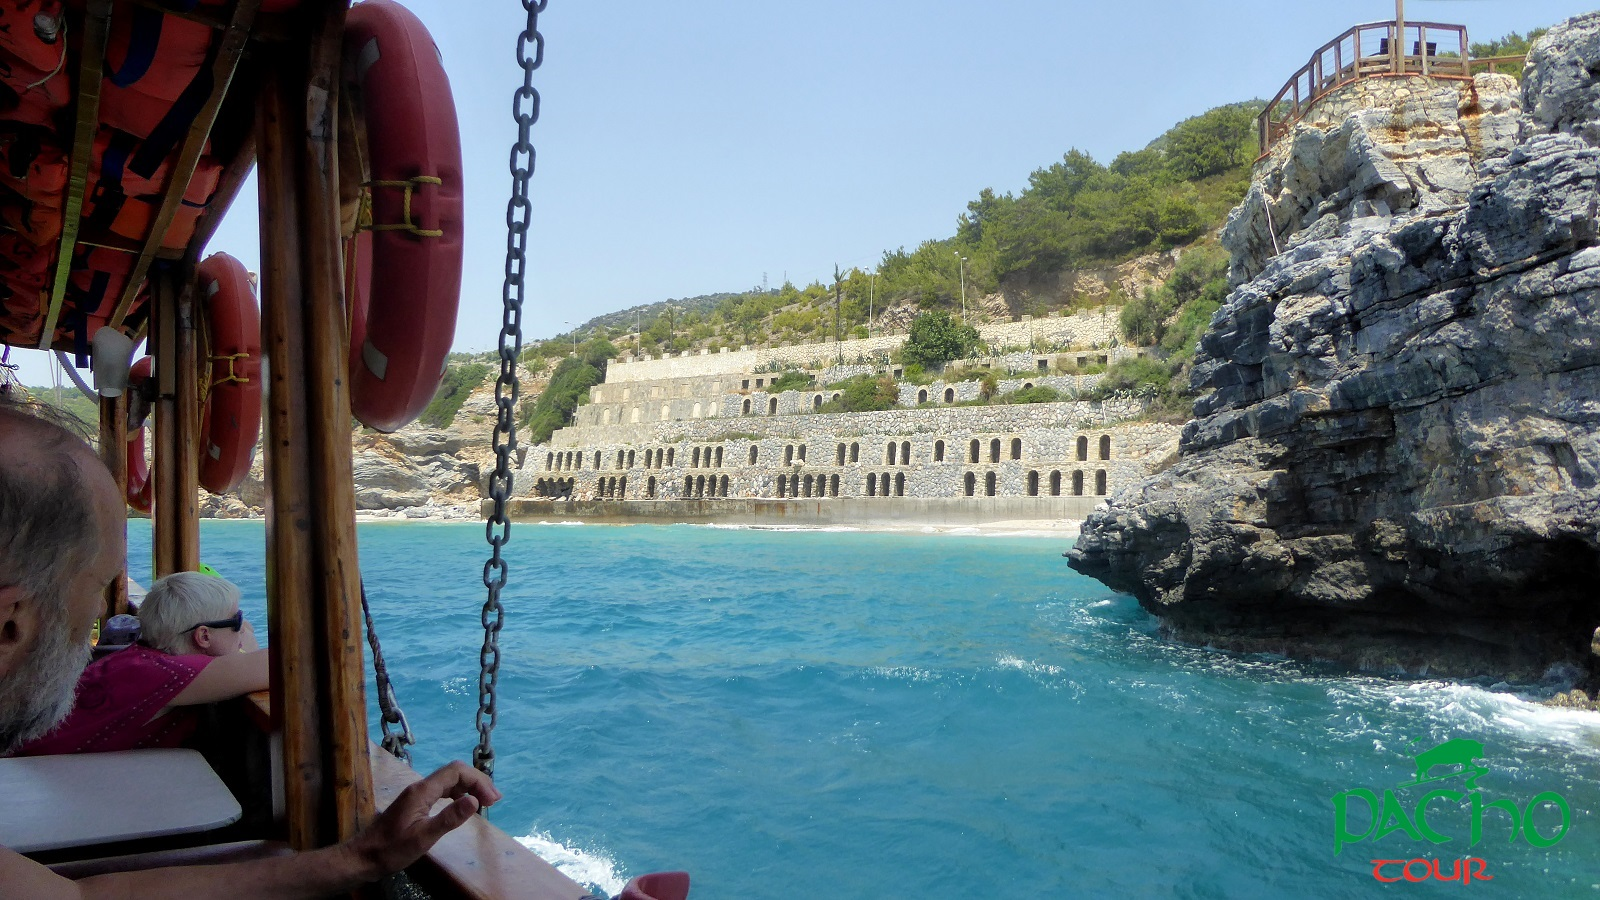 BİG KRAL BOAT TOUR TO ALANYA